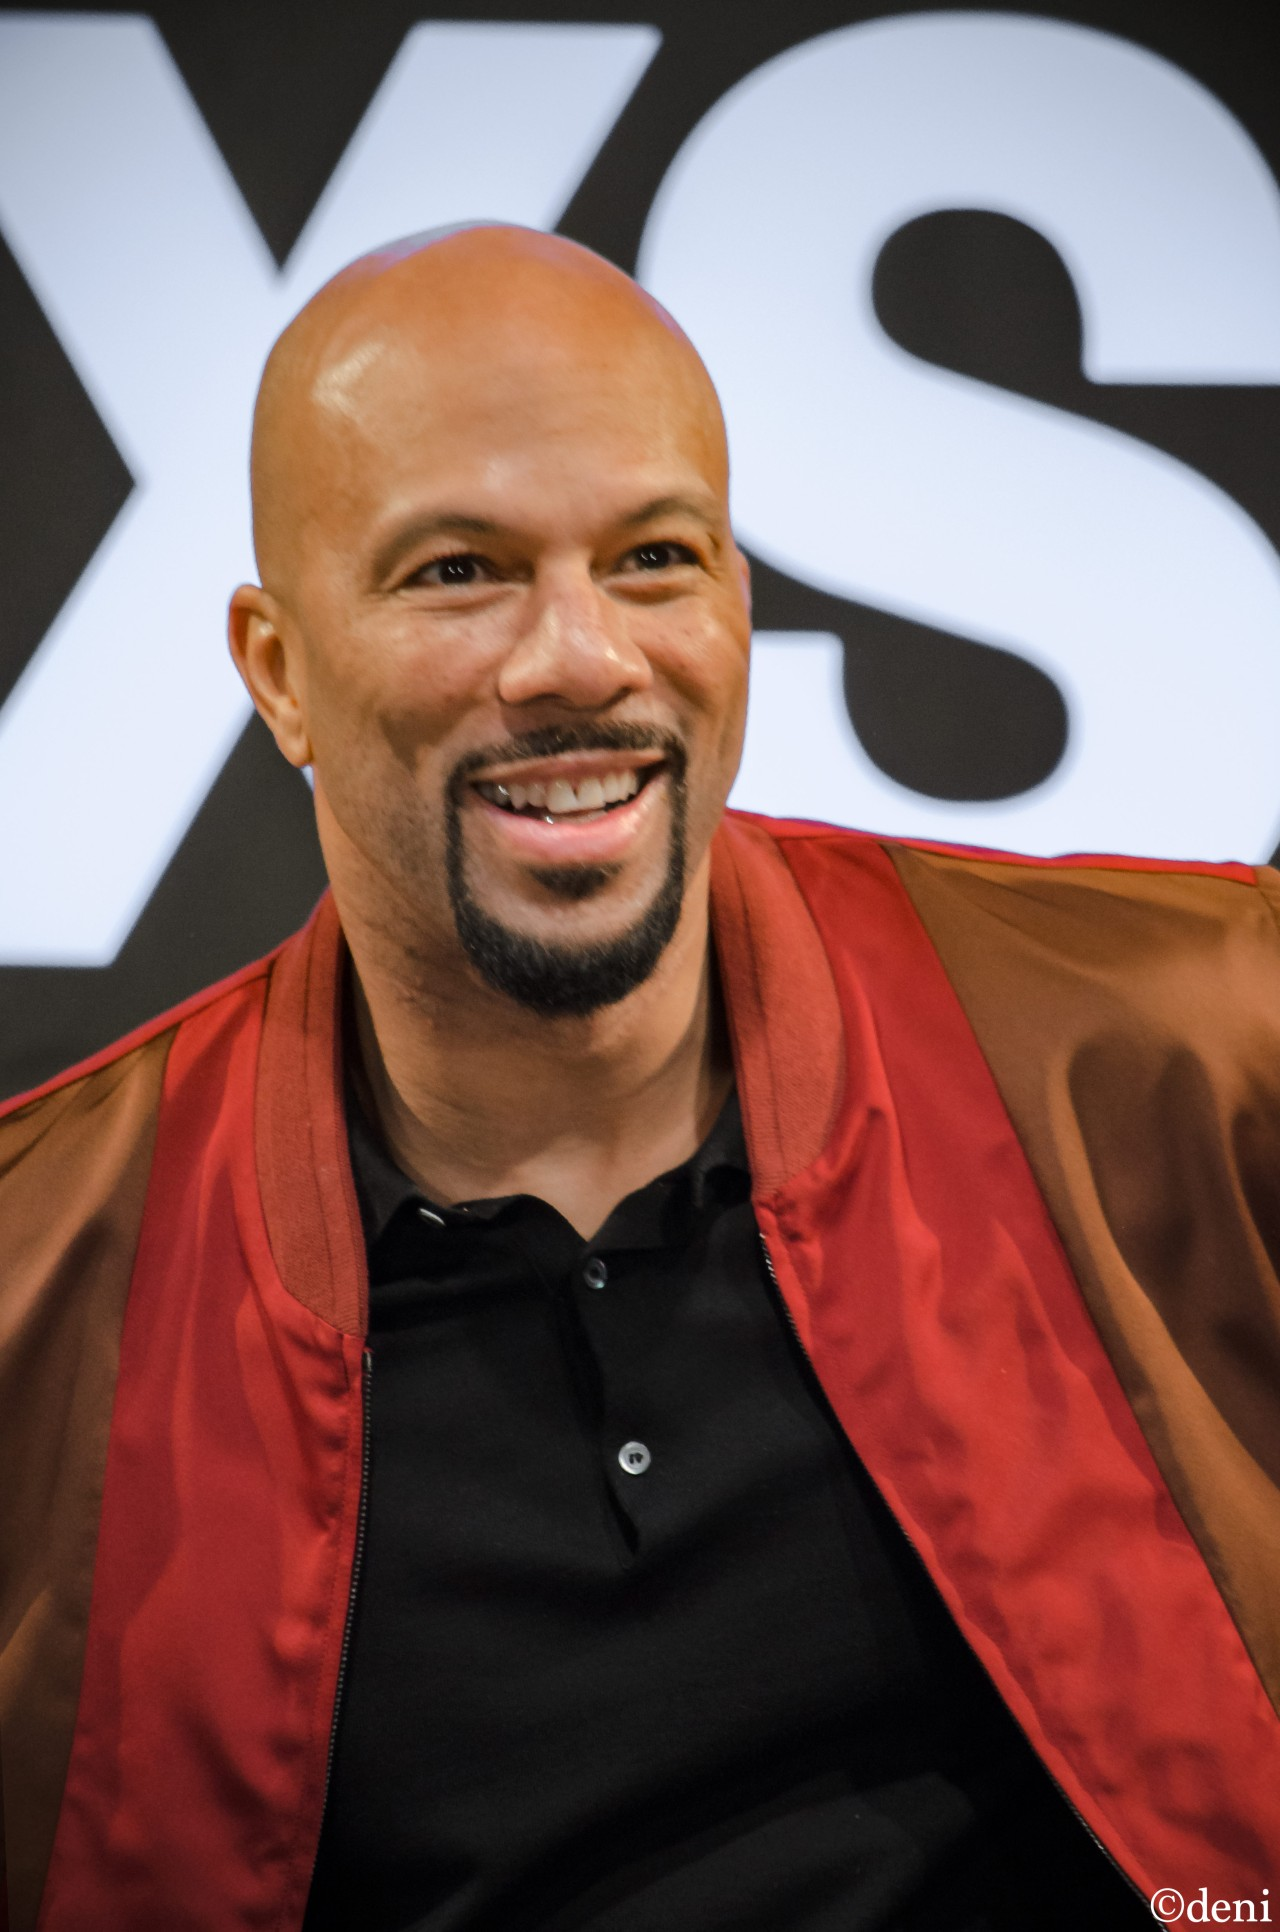 More SXSW Music Festival Photos From this week- Common, Jerry Williams, Frank Turner,More